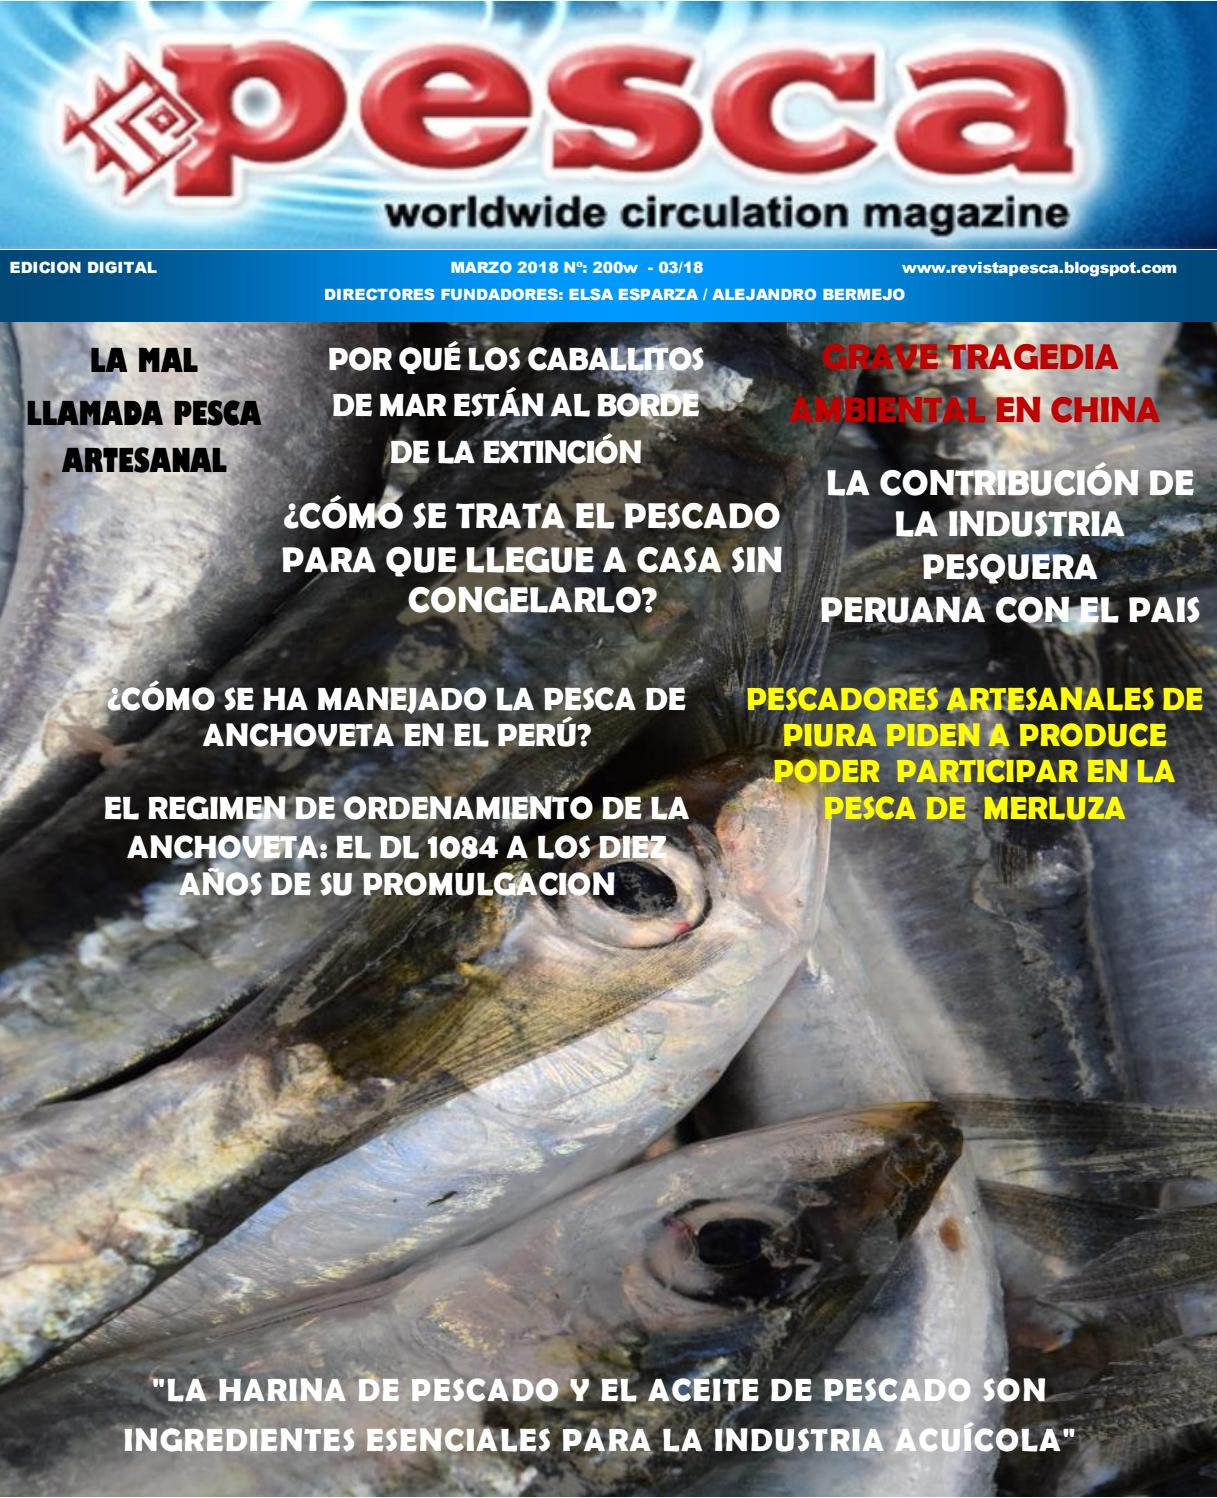 Revista Pesca marzo 2018 by Marcos Kisner - issuu